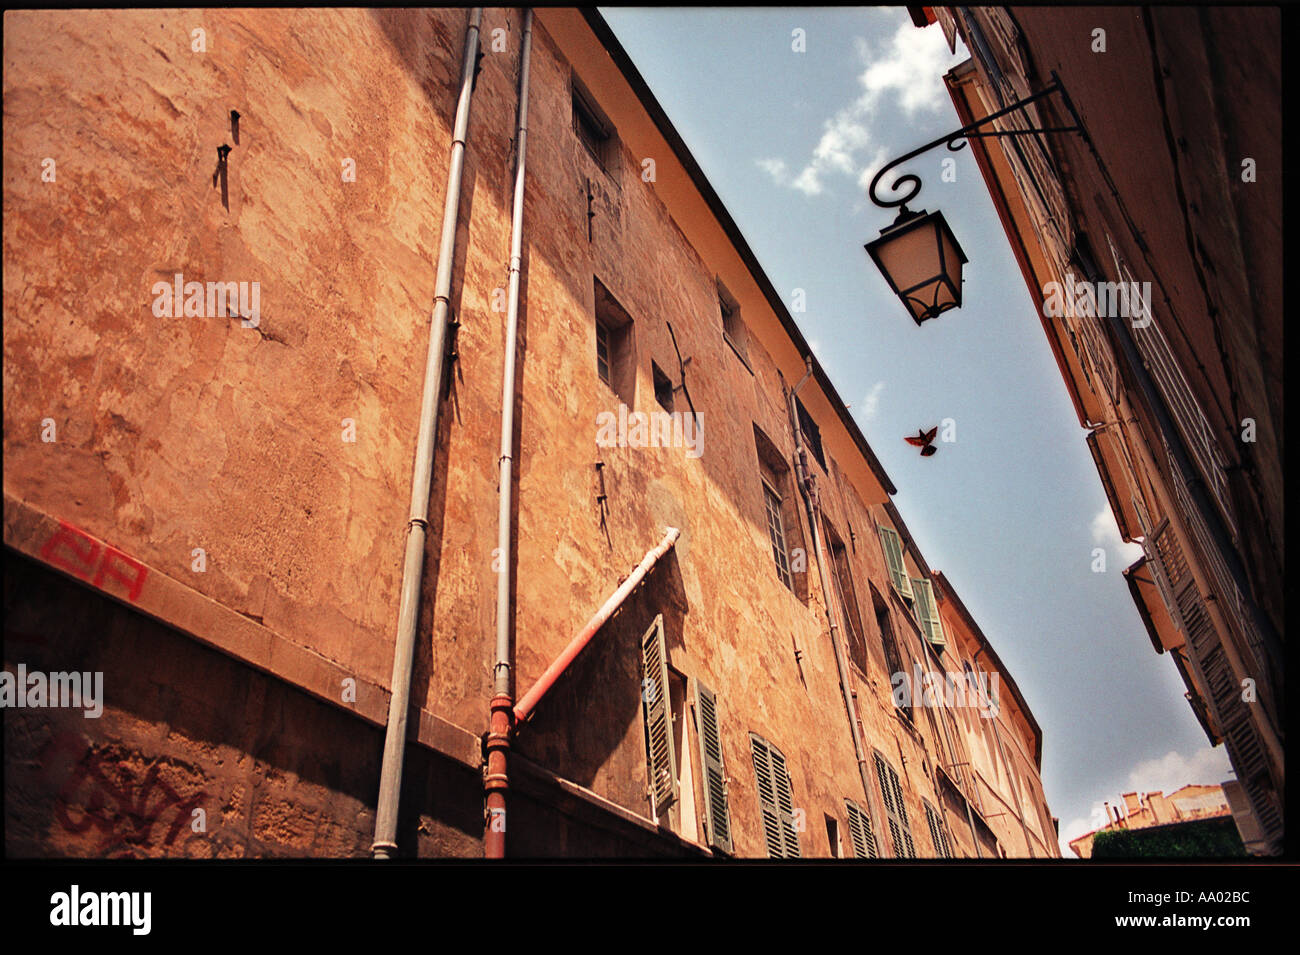 bird flying between buildings in the old center of Aix en Provence France Stock Photo